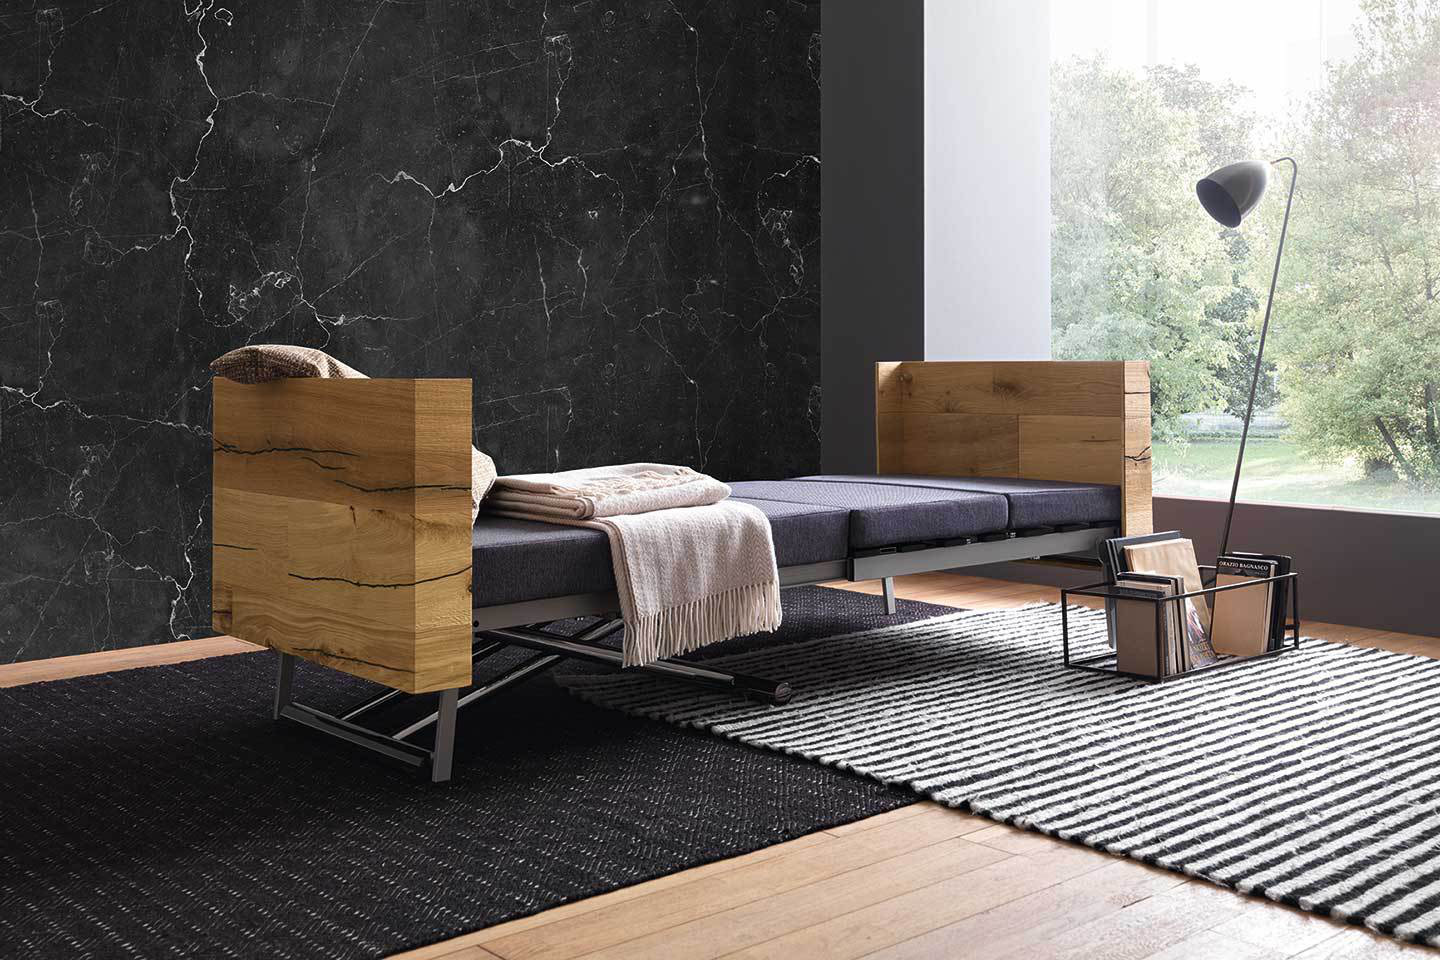 Mobili Italia_ALTACOM TAVOLETTO lift table / bed